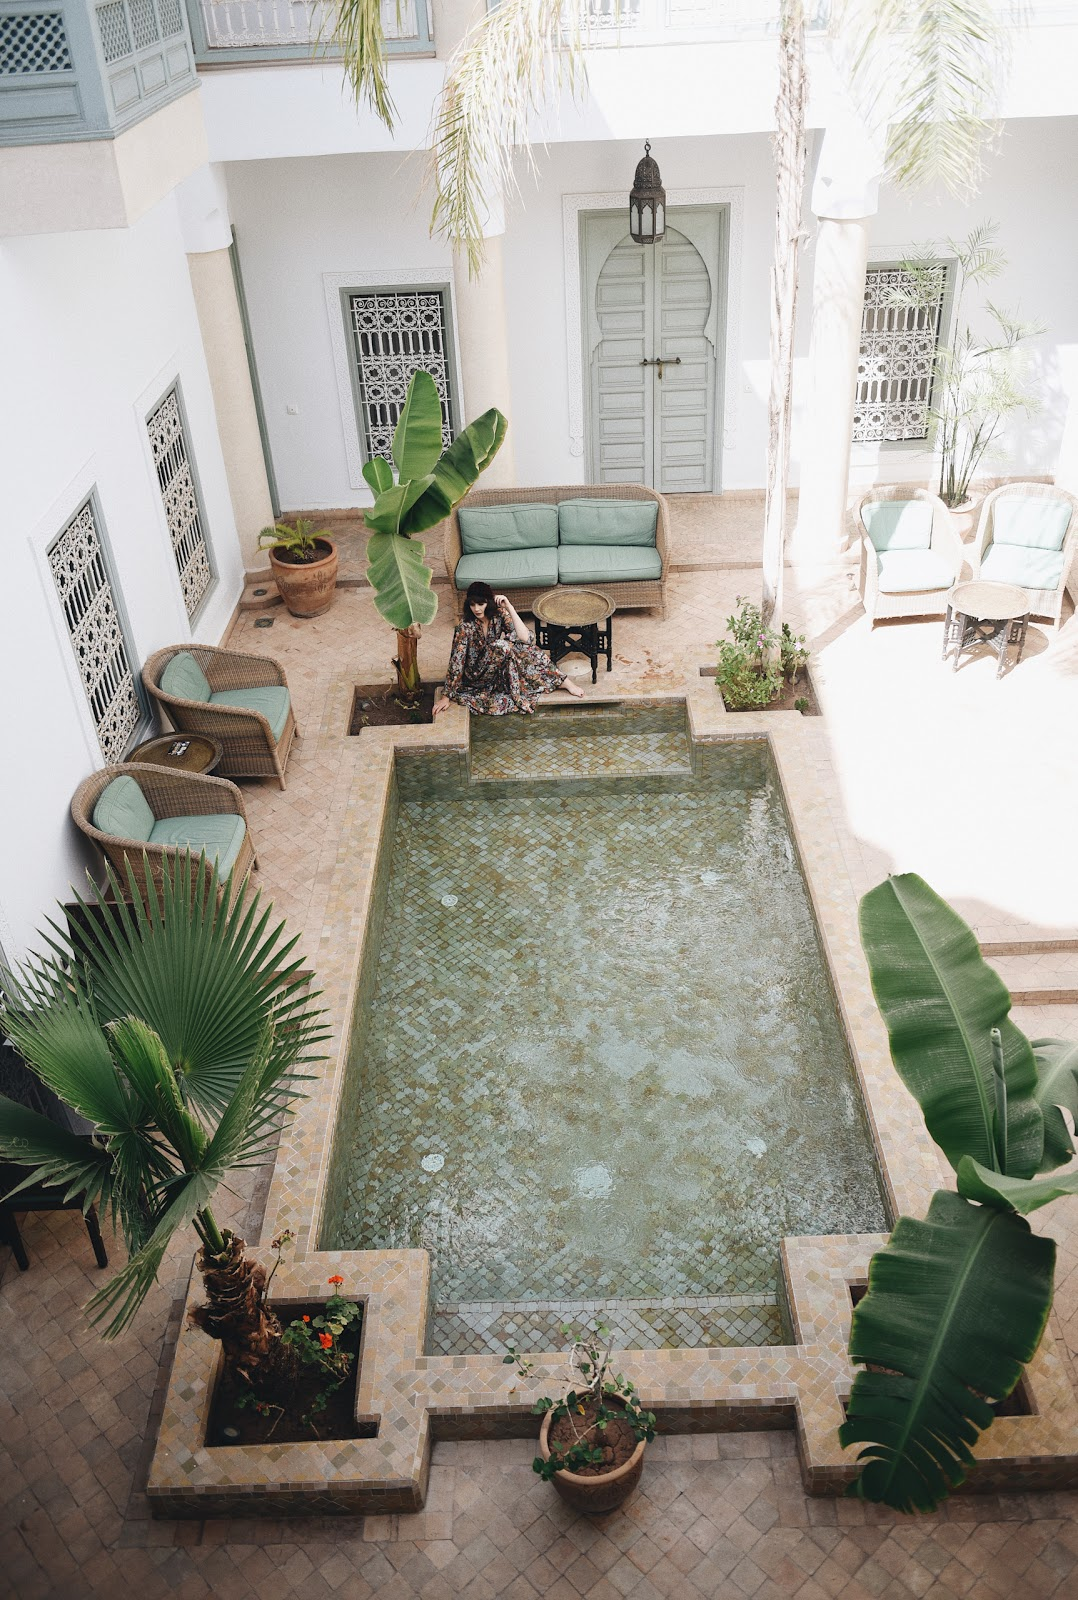 riad-marrakech.jpeg